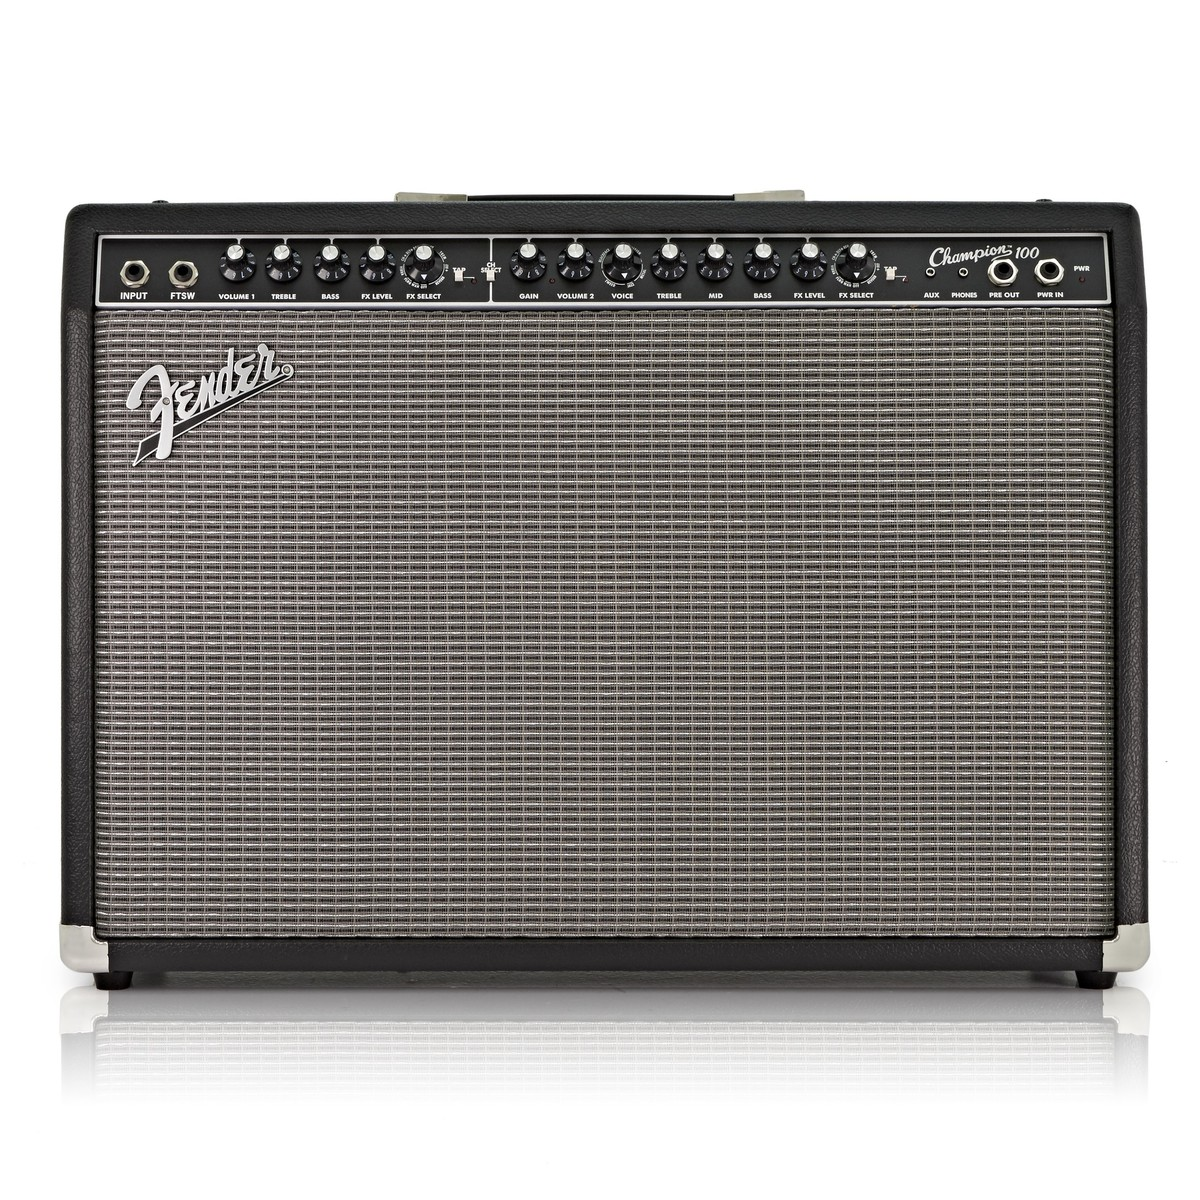 fender champion 100 guitar combo w effects at gear4music. Black Bedroom Furniture Sets. Home Design Ideas